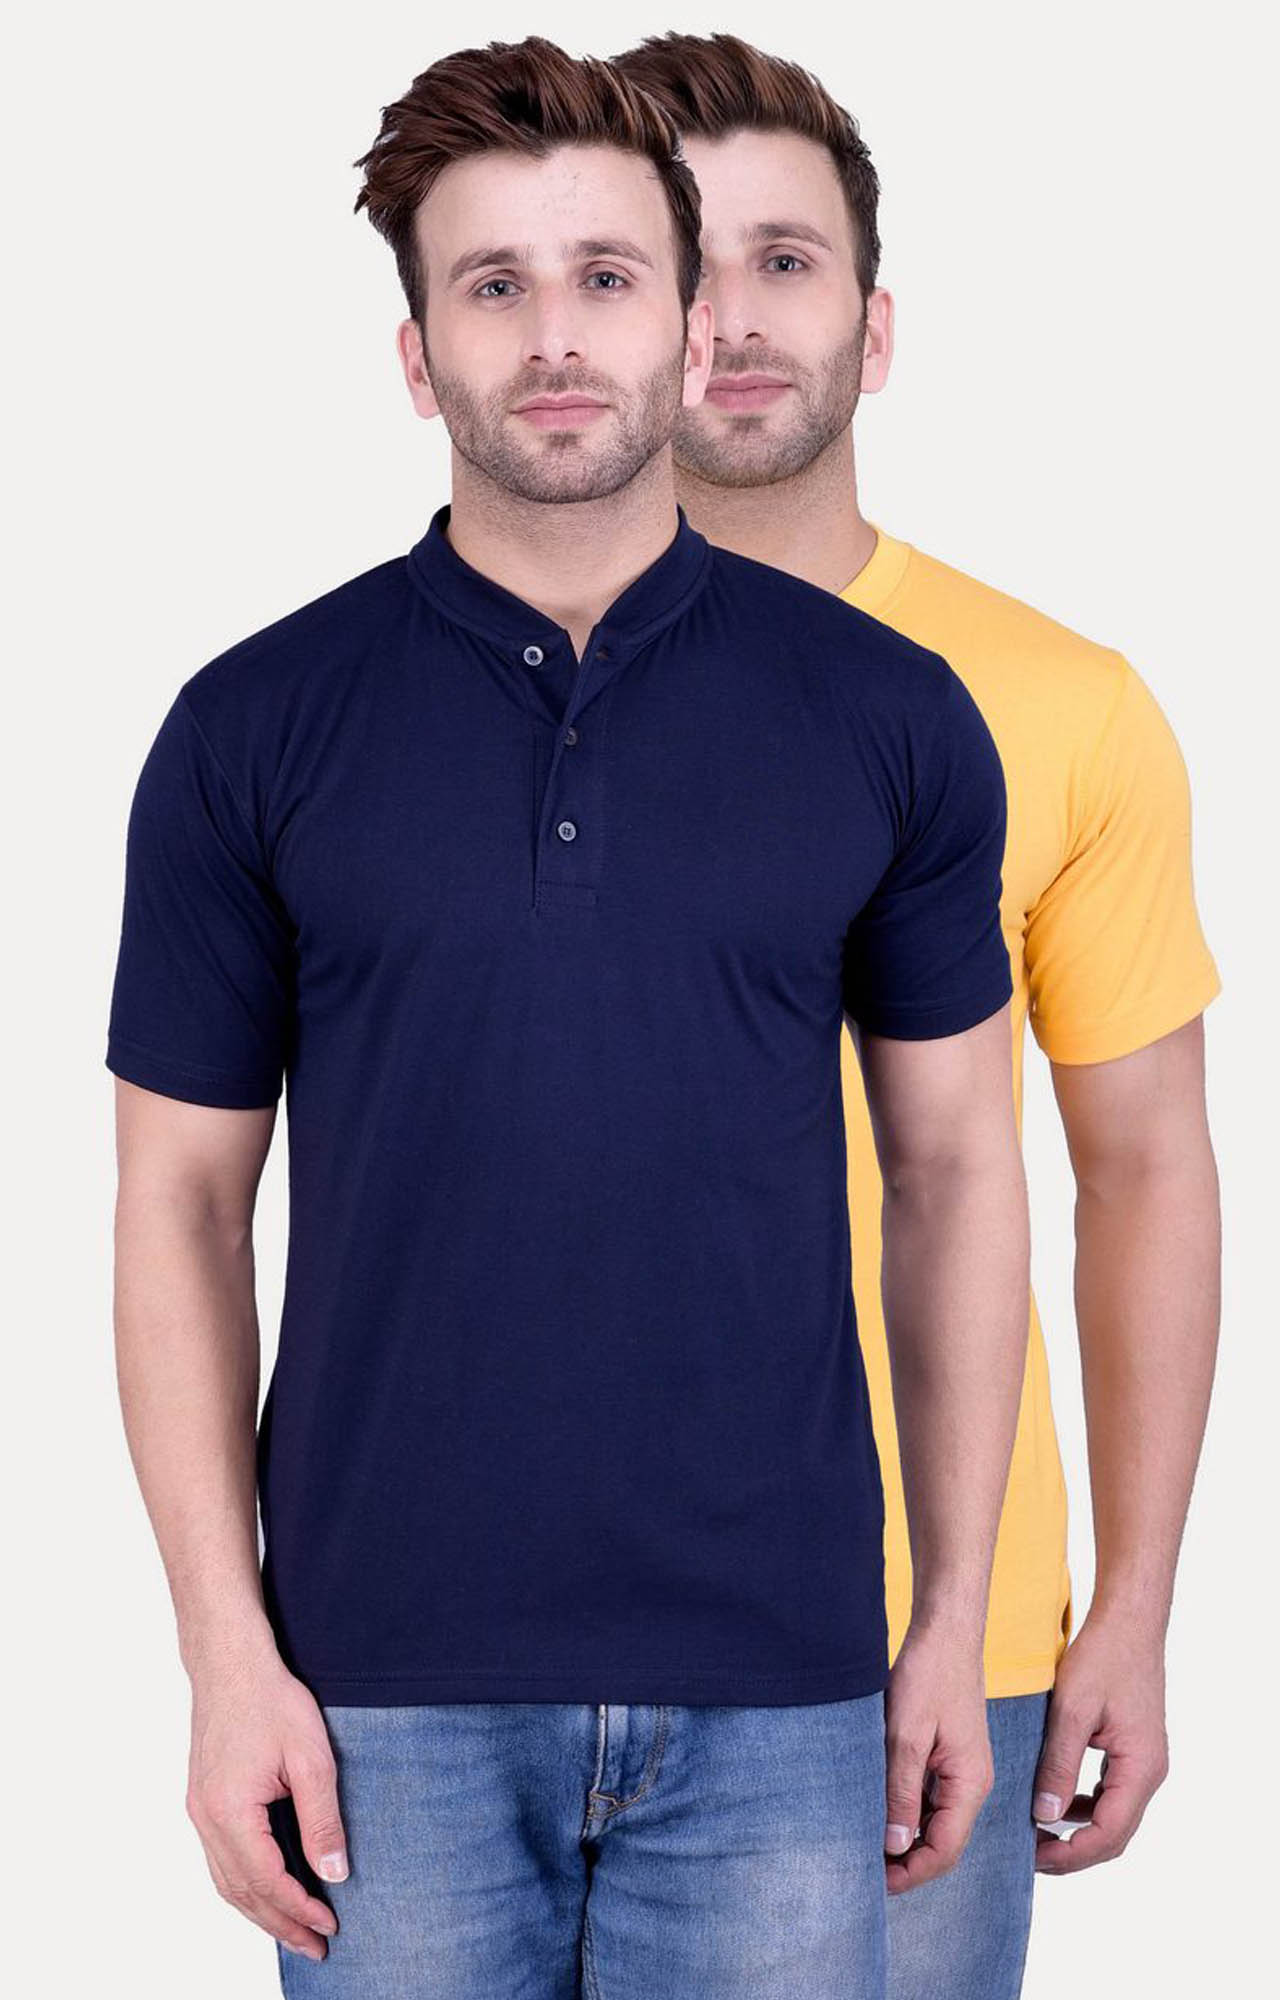 Weardo | Navy and Yellow Solid T-Shirt - Pack of 2